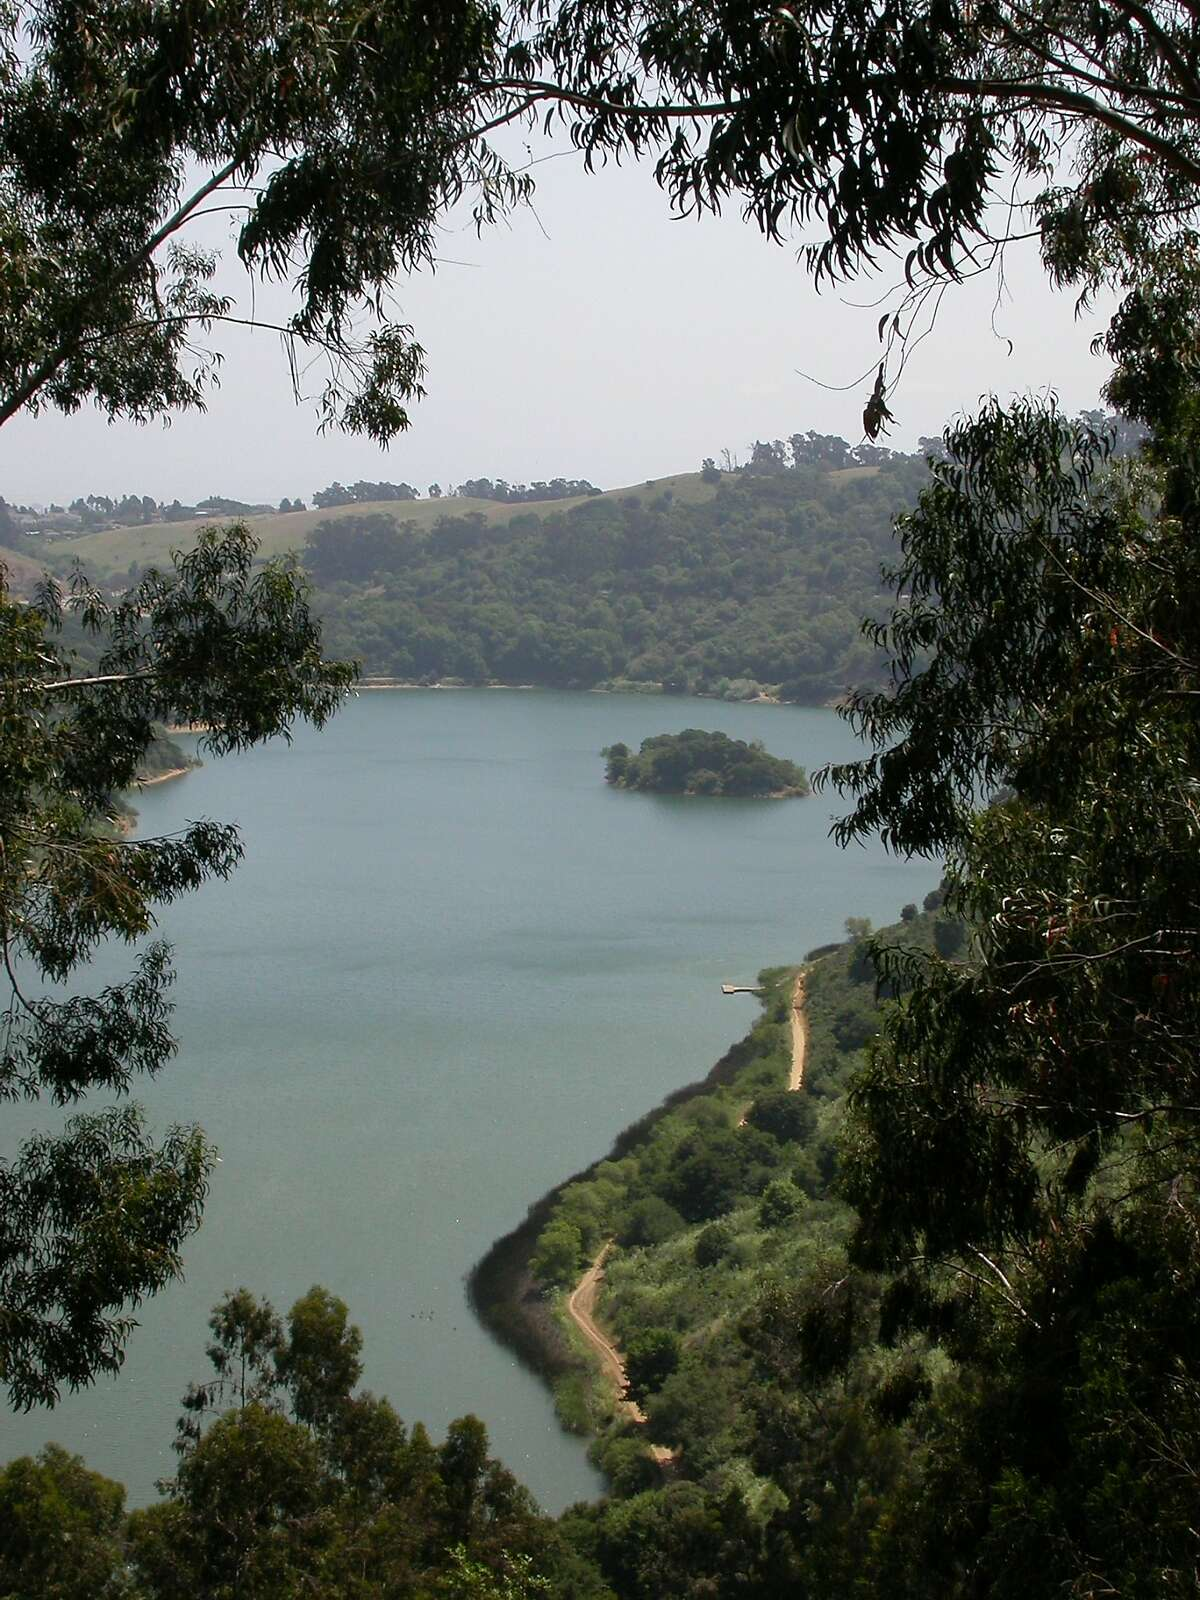 Lake Chabot viewed from the rim above the lake at a walk-in campsite. Chabot, located near Castro Valley, is one of the Bay Area's best lakes for recreation, with rental boats and kayaks, a fishing program, excellent bike trails and picnic sites